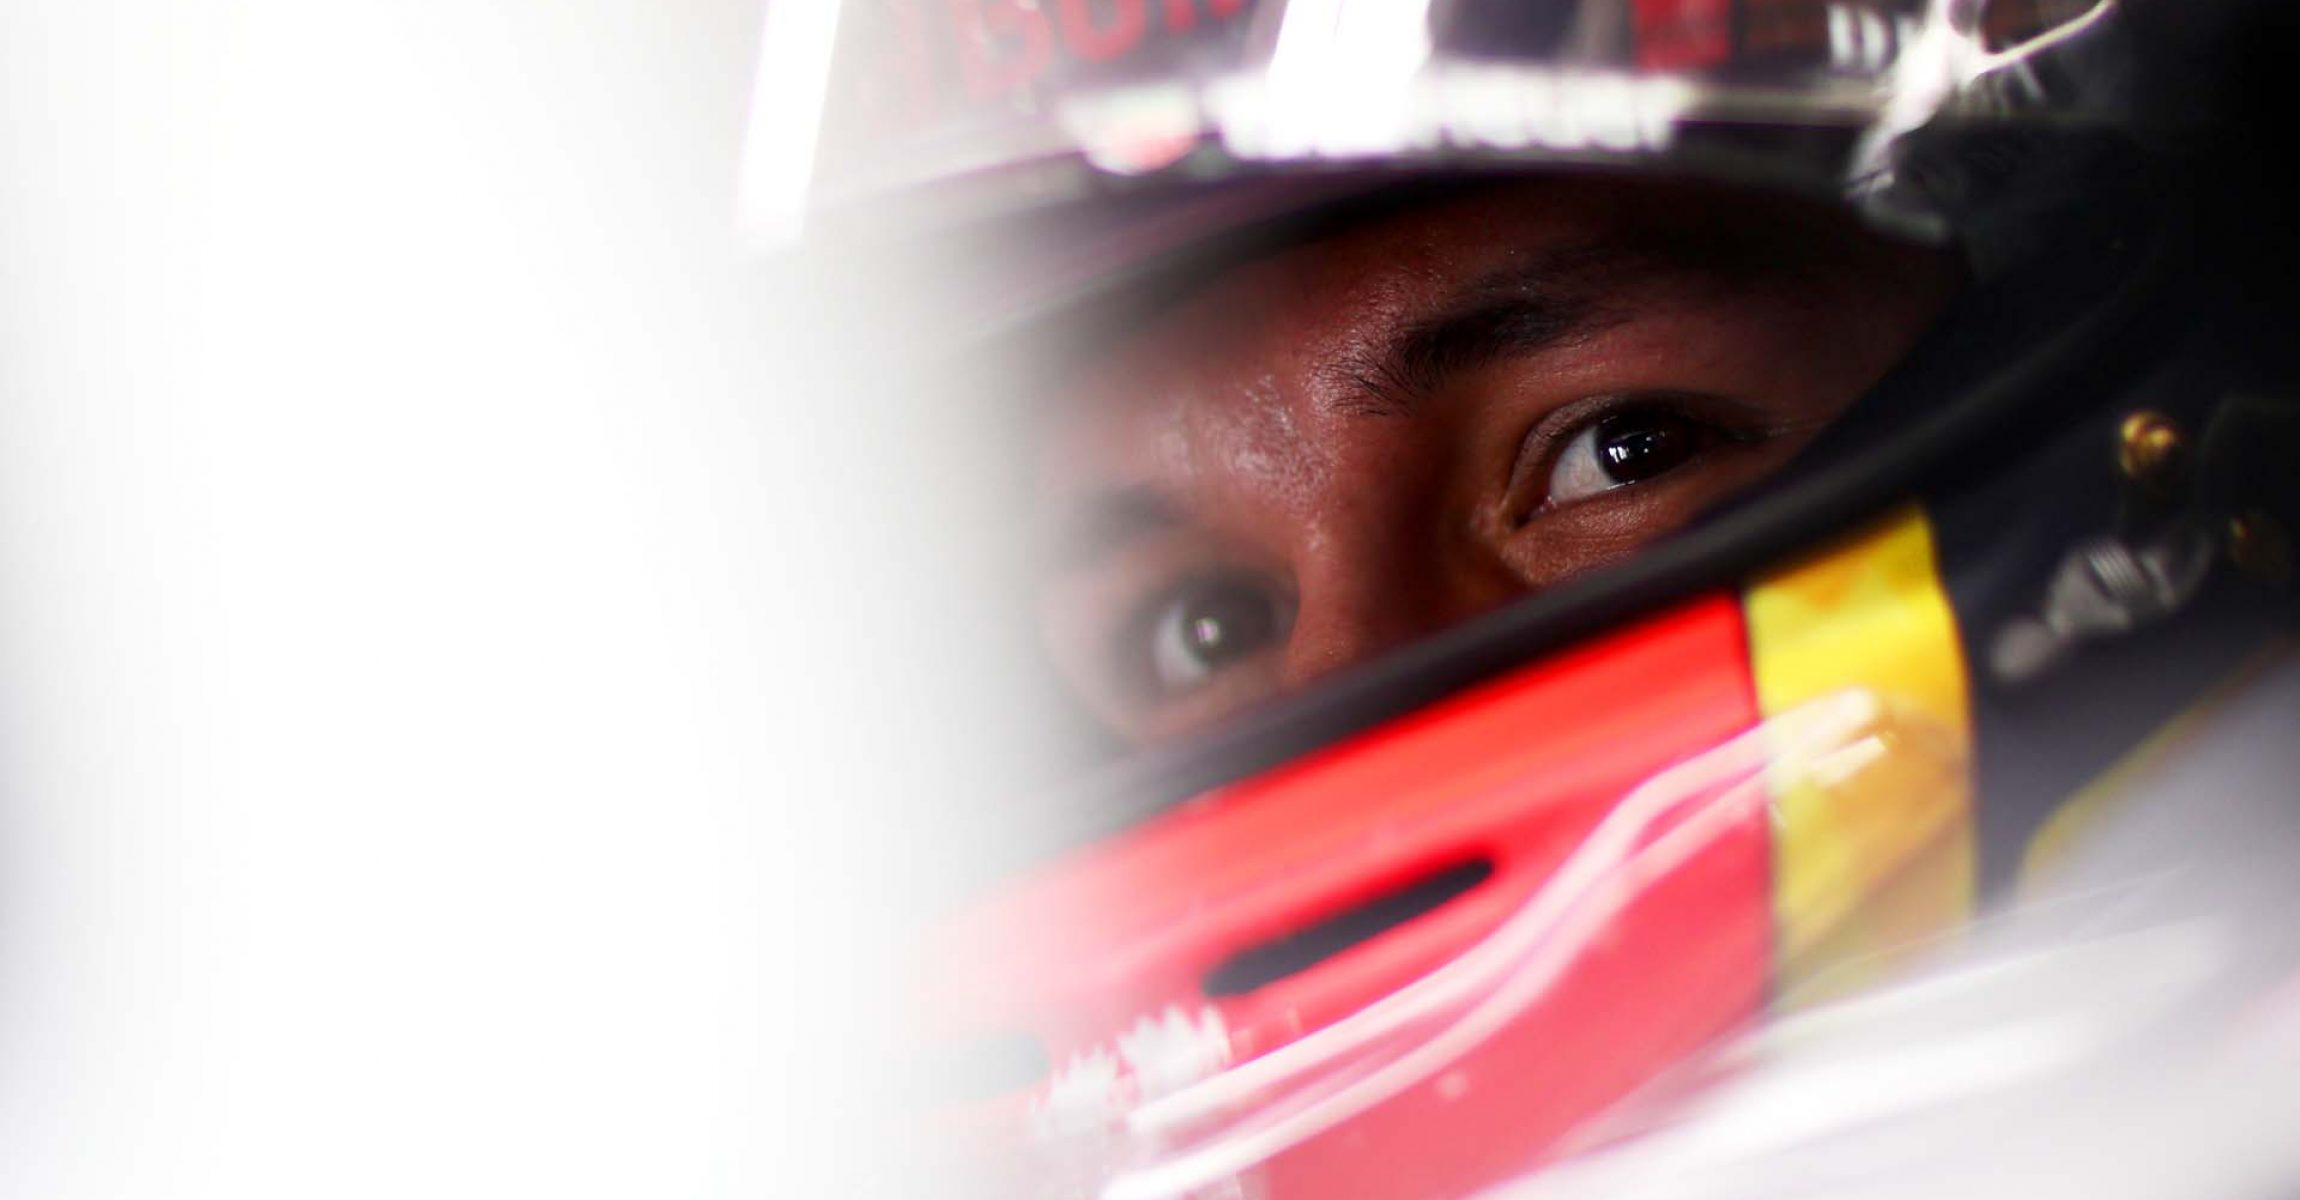 SUZUKA, JAPAN - OCTOBER 11: Alexander Albon of Thailand and Red Bull Racing prepares to drive in the garage during practice for the F1 Grand Prix of Japan at Suzuka Circuit on October 11, 2019 in Suzuka, Japan. (Photo by Dan Istitene/Getty Images) // Getty Images / Red Bull Content Pool // AP-21U9N8D211W11 // Usage for editorial use only //